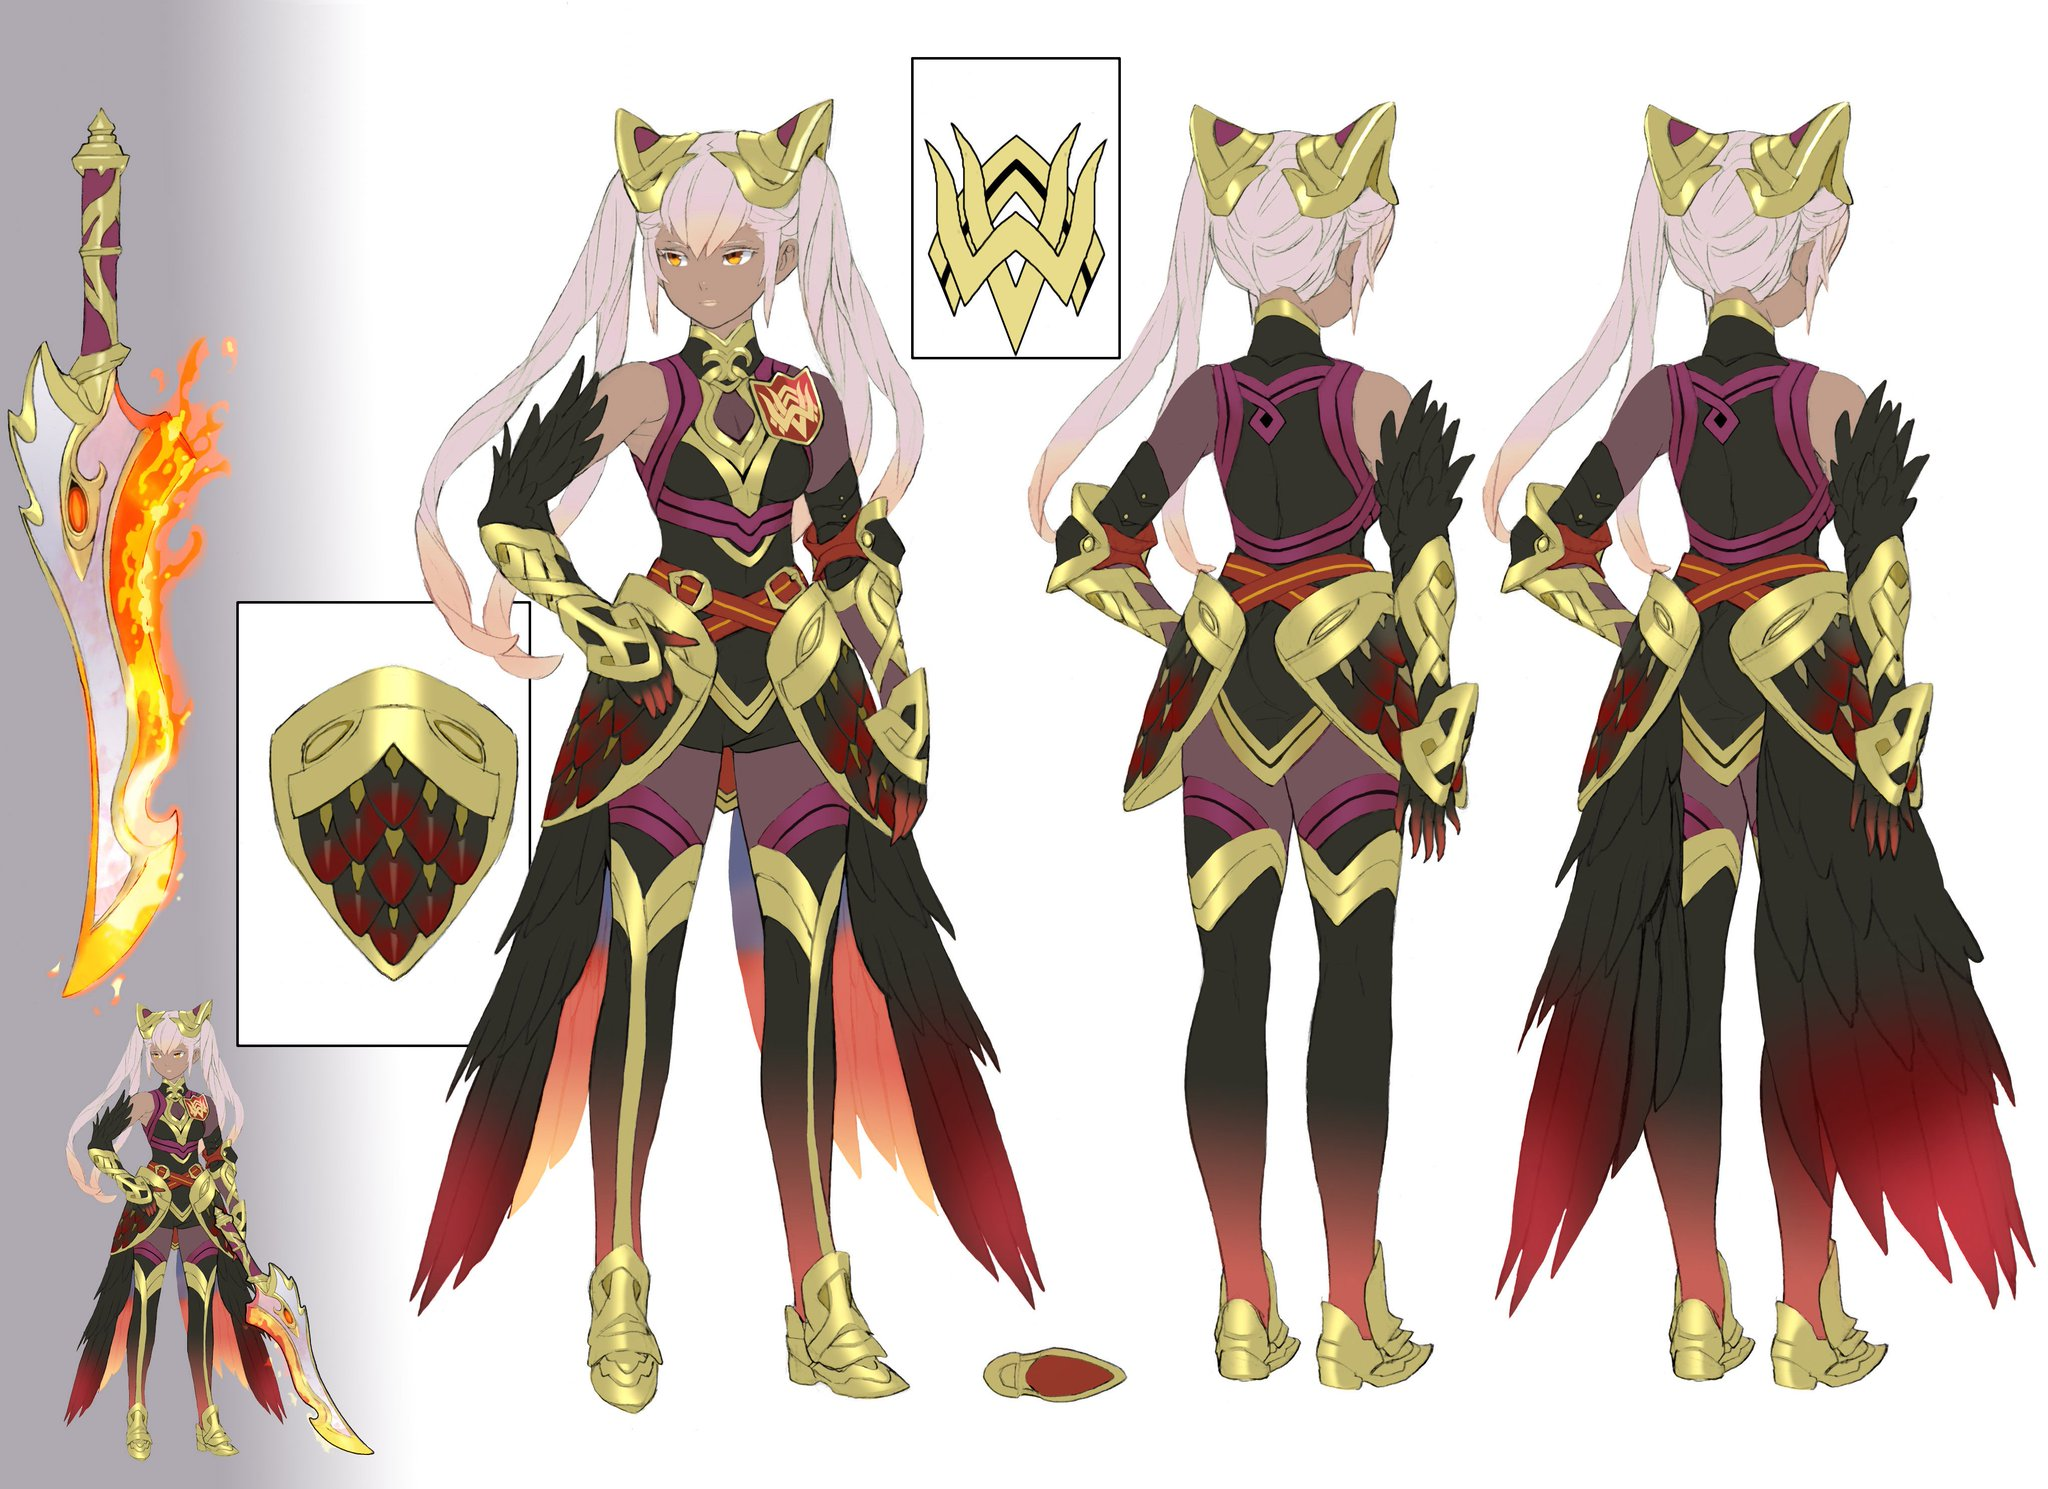 Check out this concept art for Laevatein, a brand-new Hero appearing in Book II of #FEHeroes! https://t.co/a4zDtxHoNx